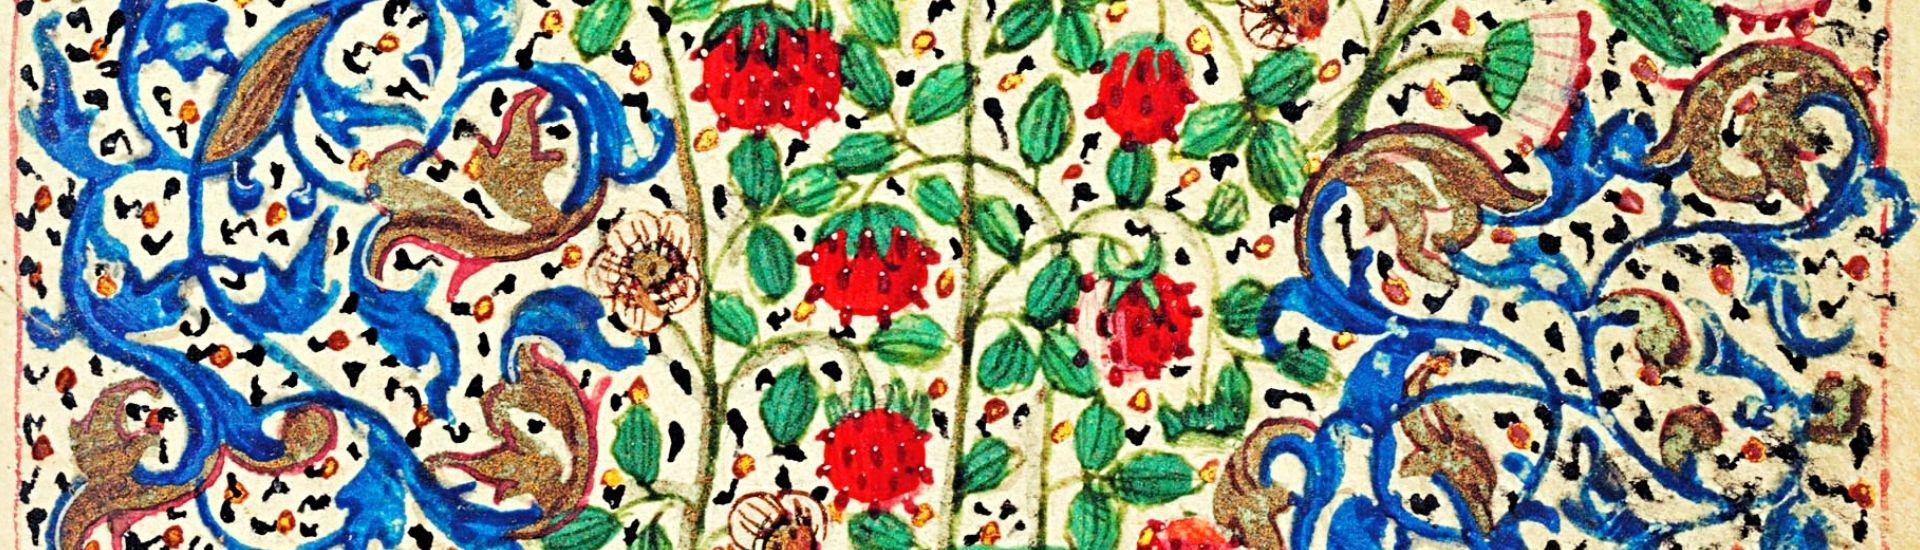 Floral images from Christies manuscript